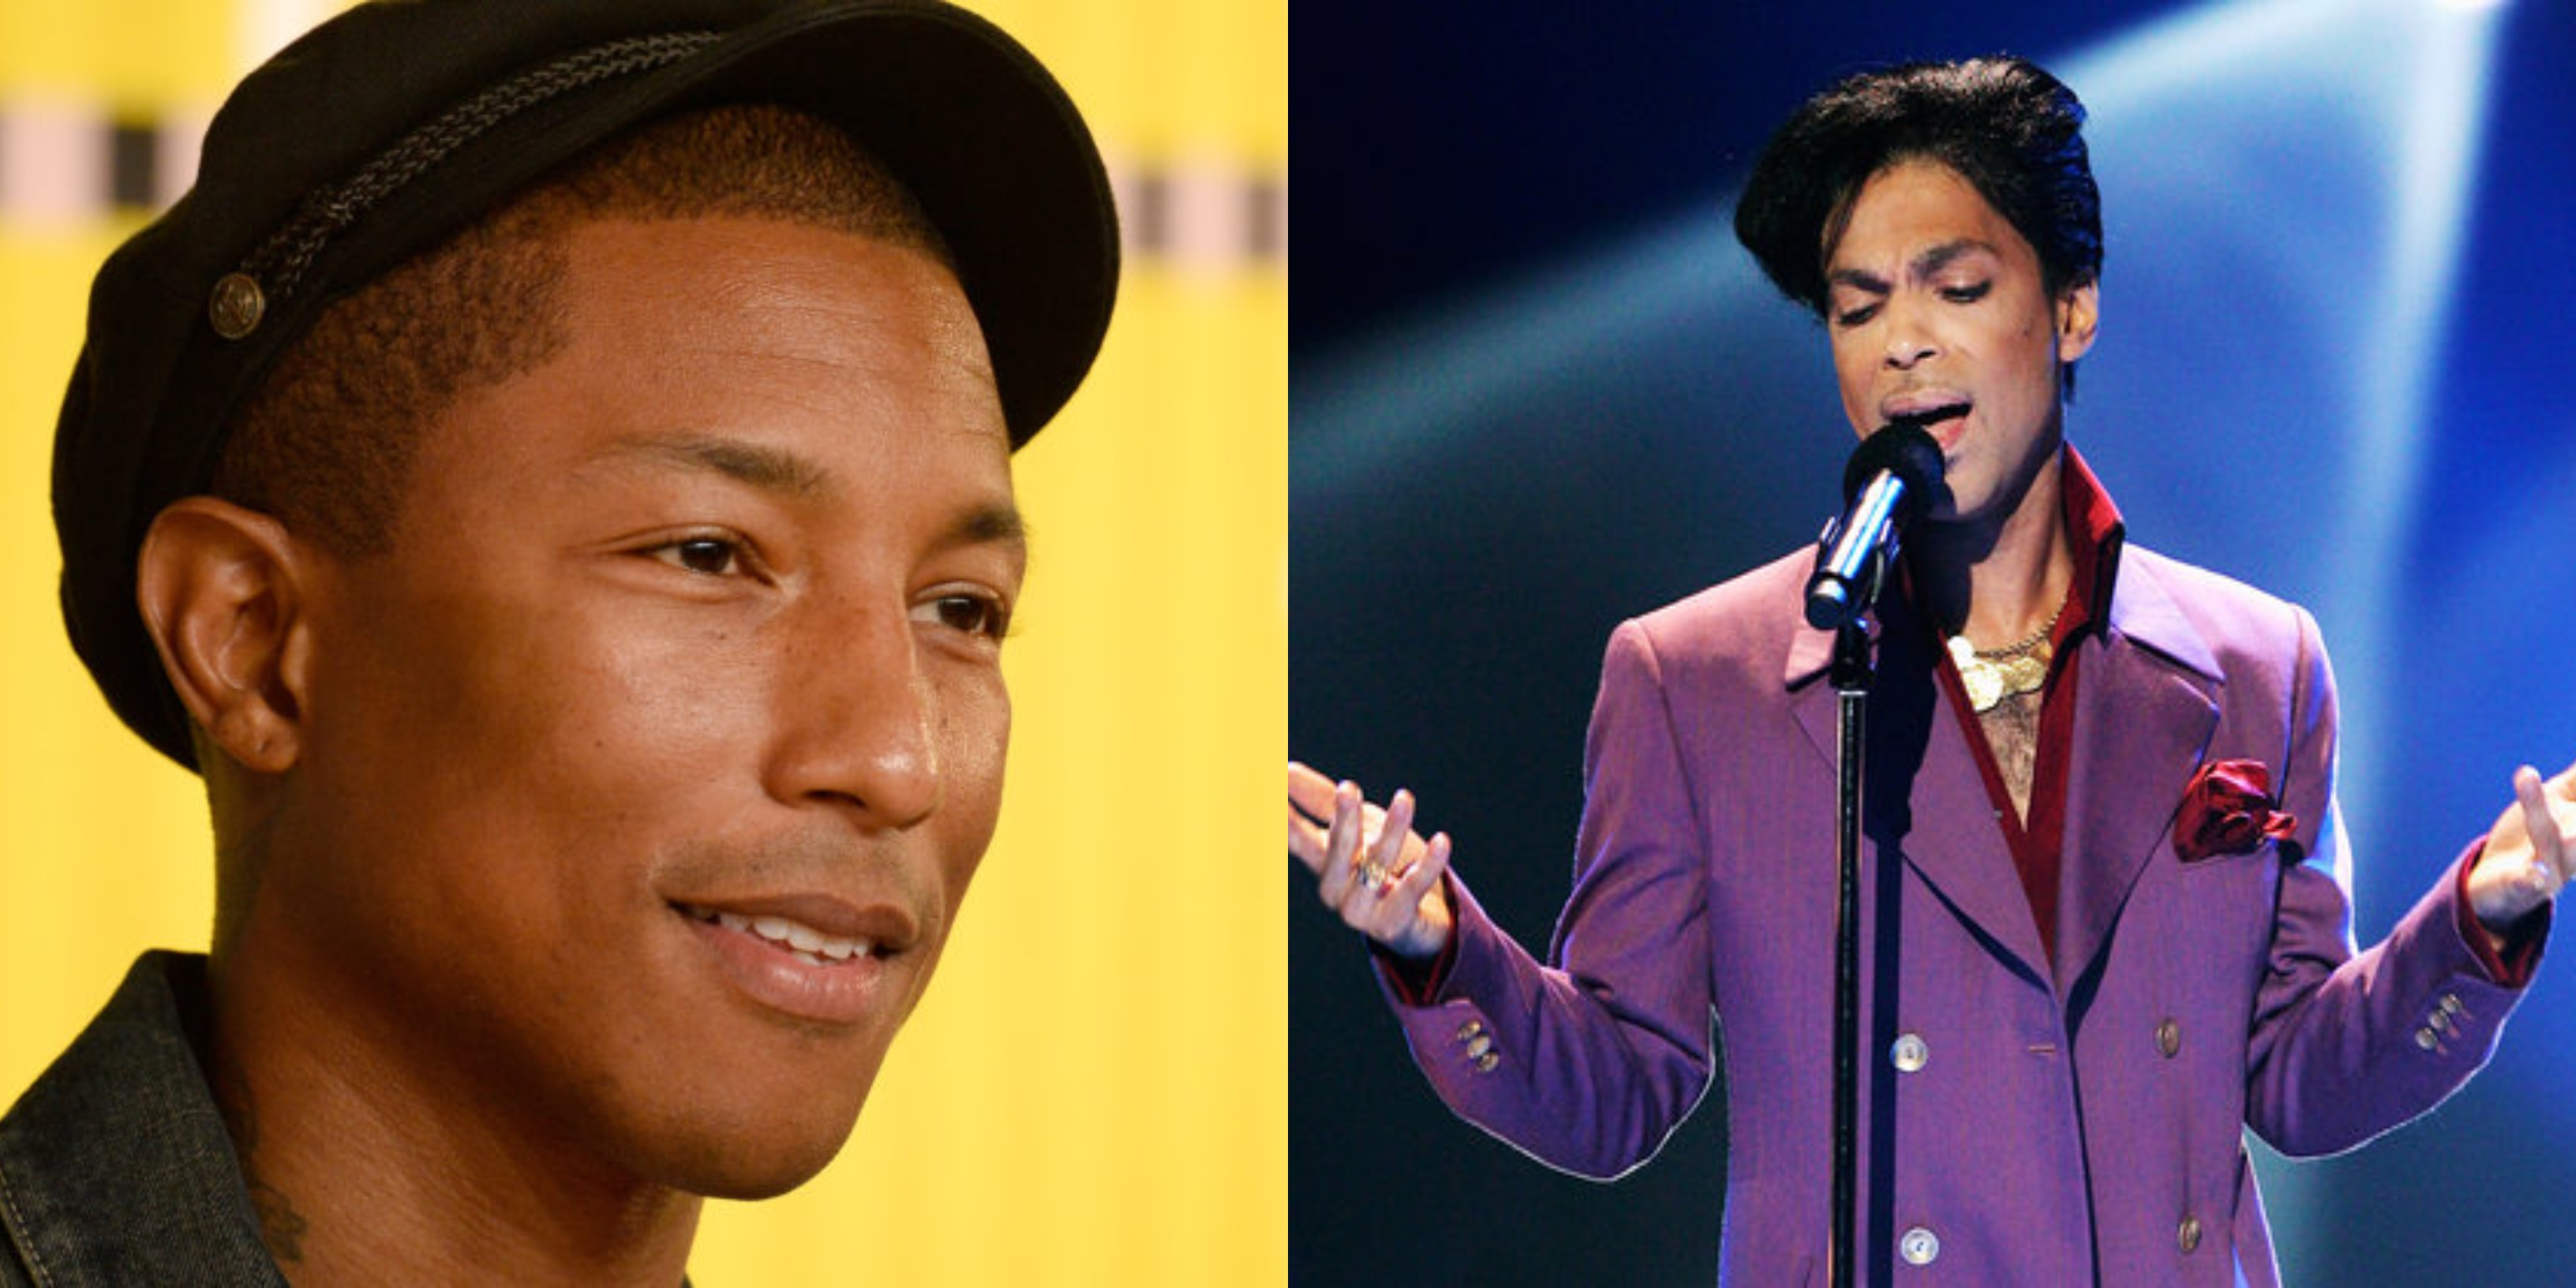 Pharrell Williams Initially Wrote 'Frontin' for Prince & 'Happy' for CeeLo Green